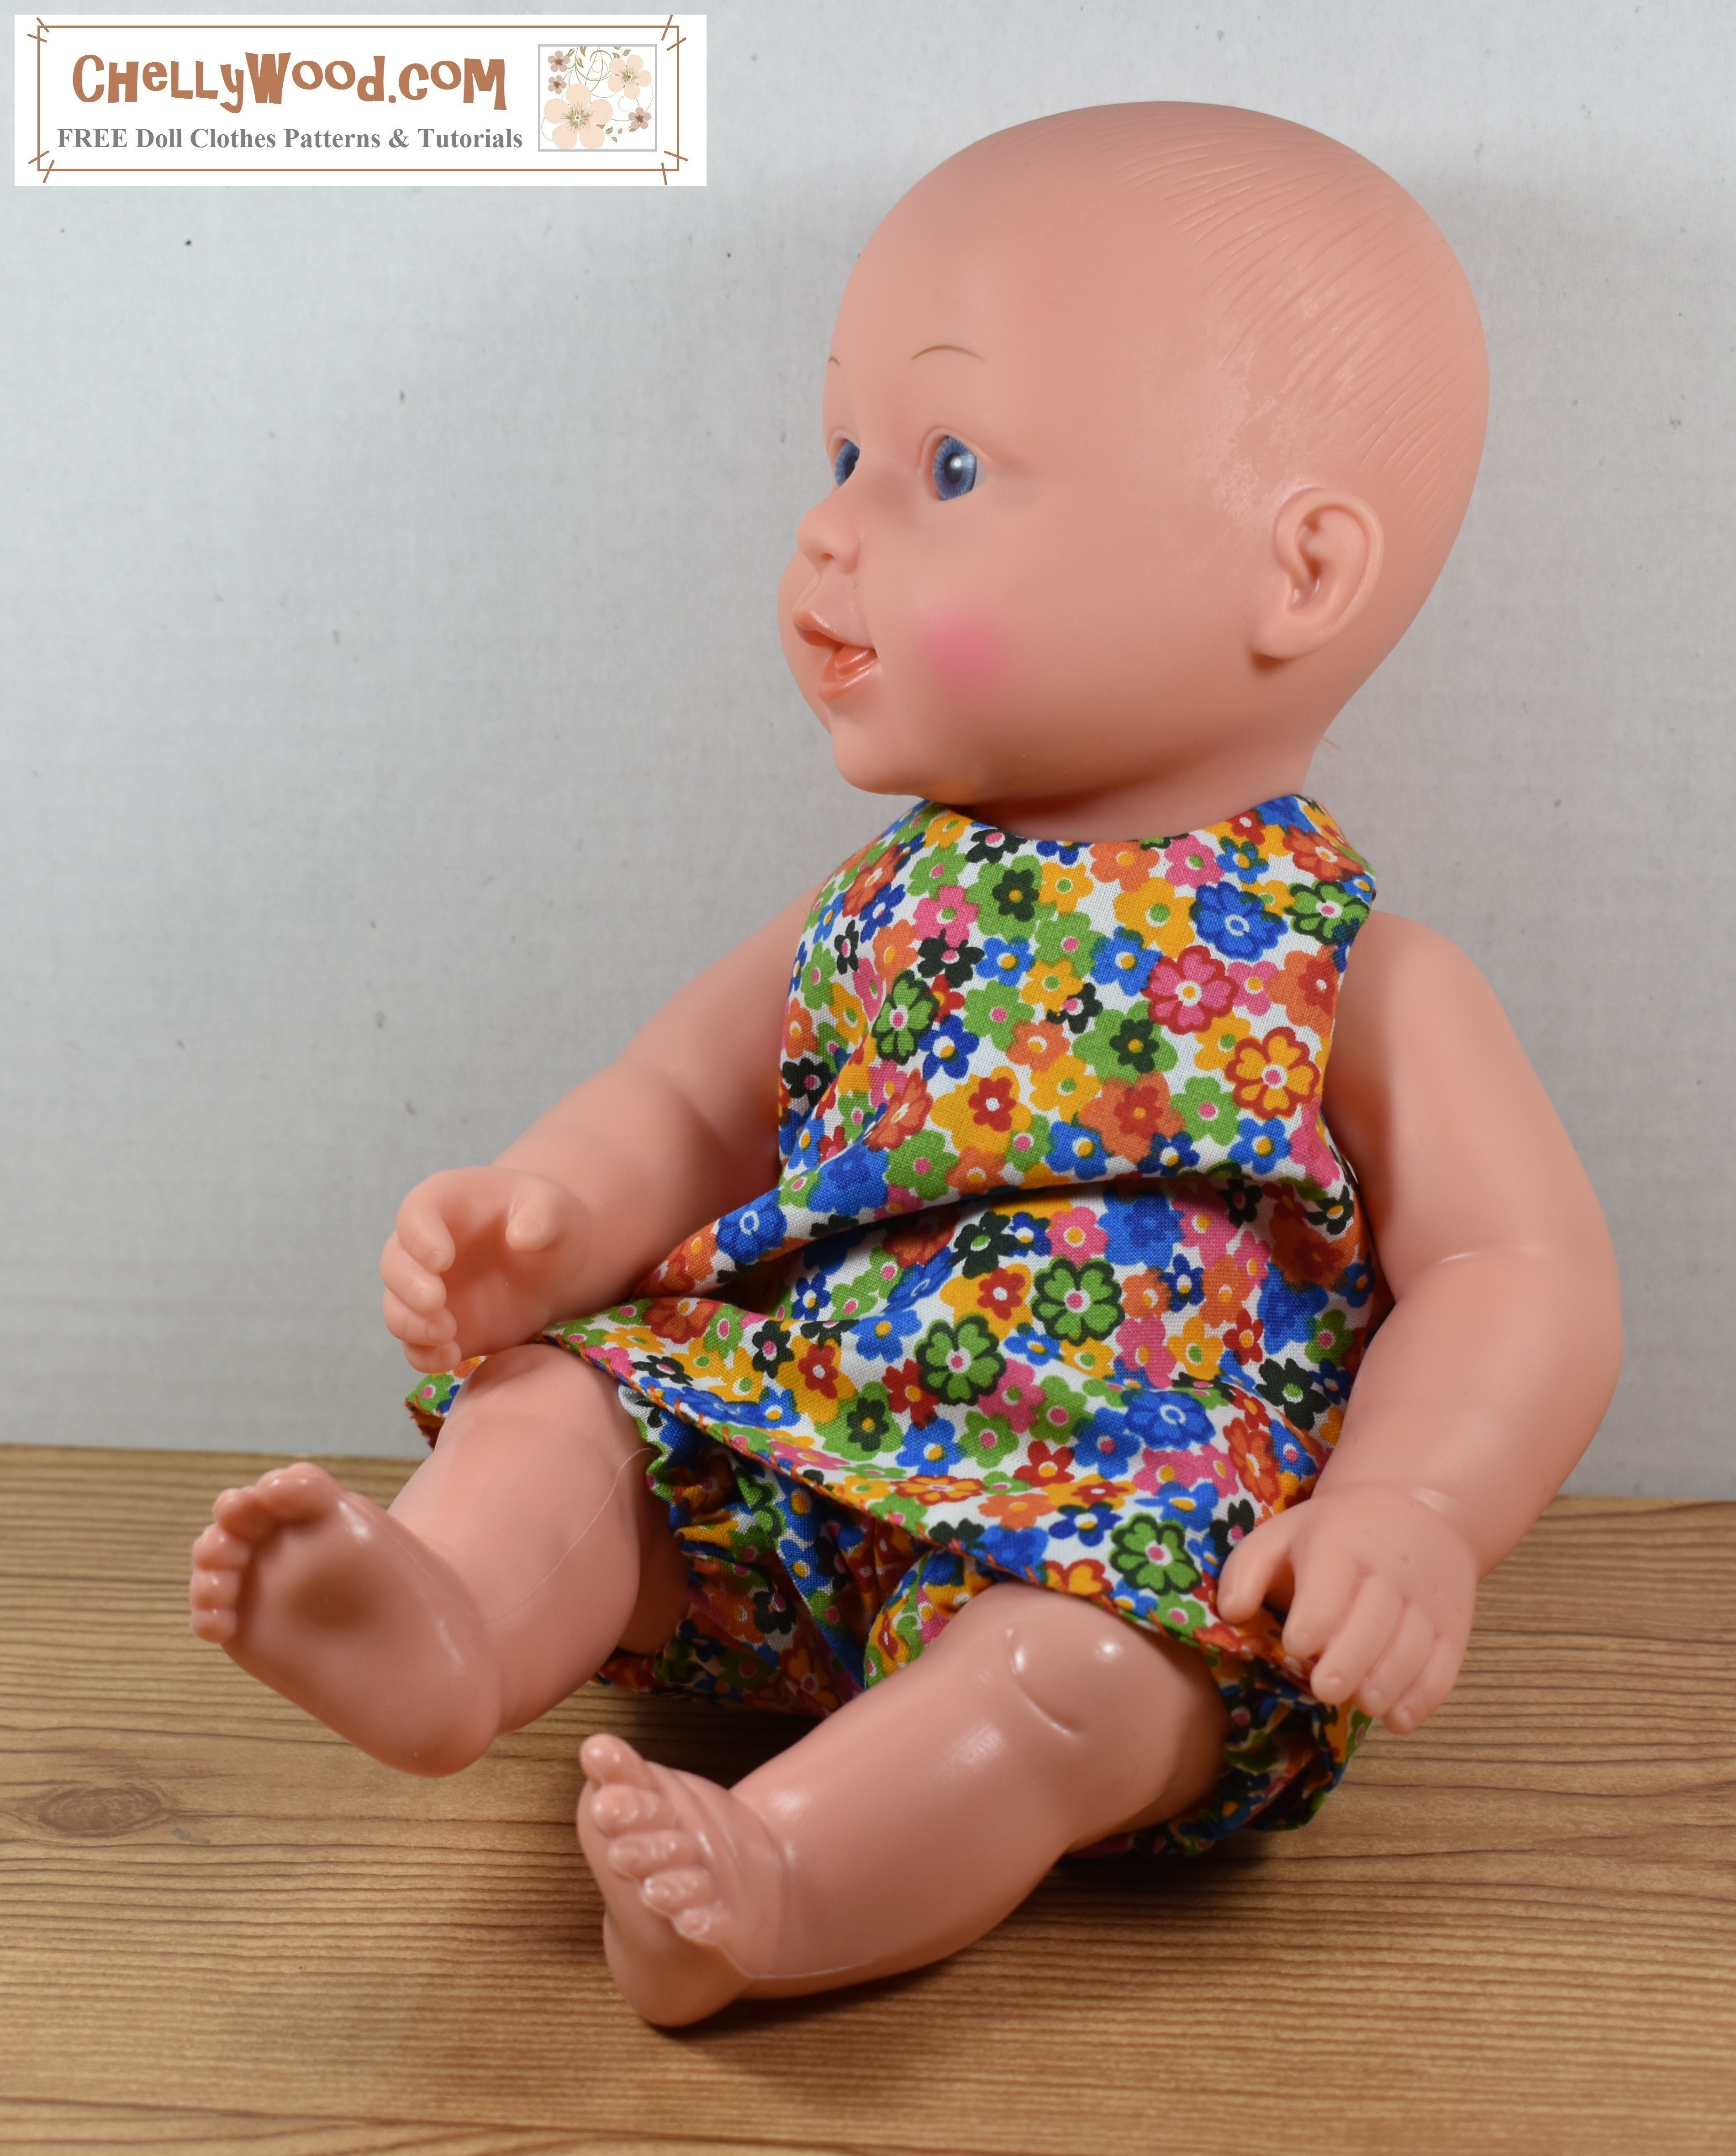 The photo shows a 12 inch baby doll modeling  a halter dress with a matching pair of bloomers in cotton floral fabric.